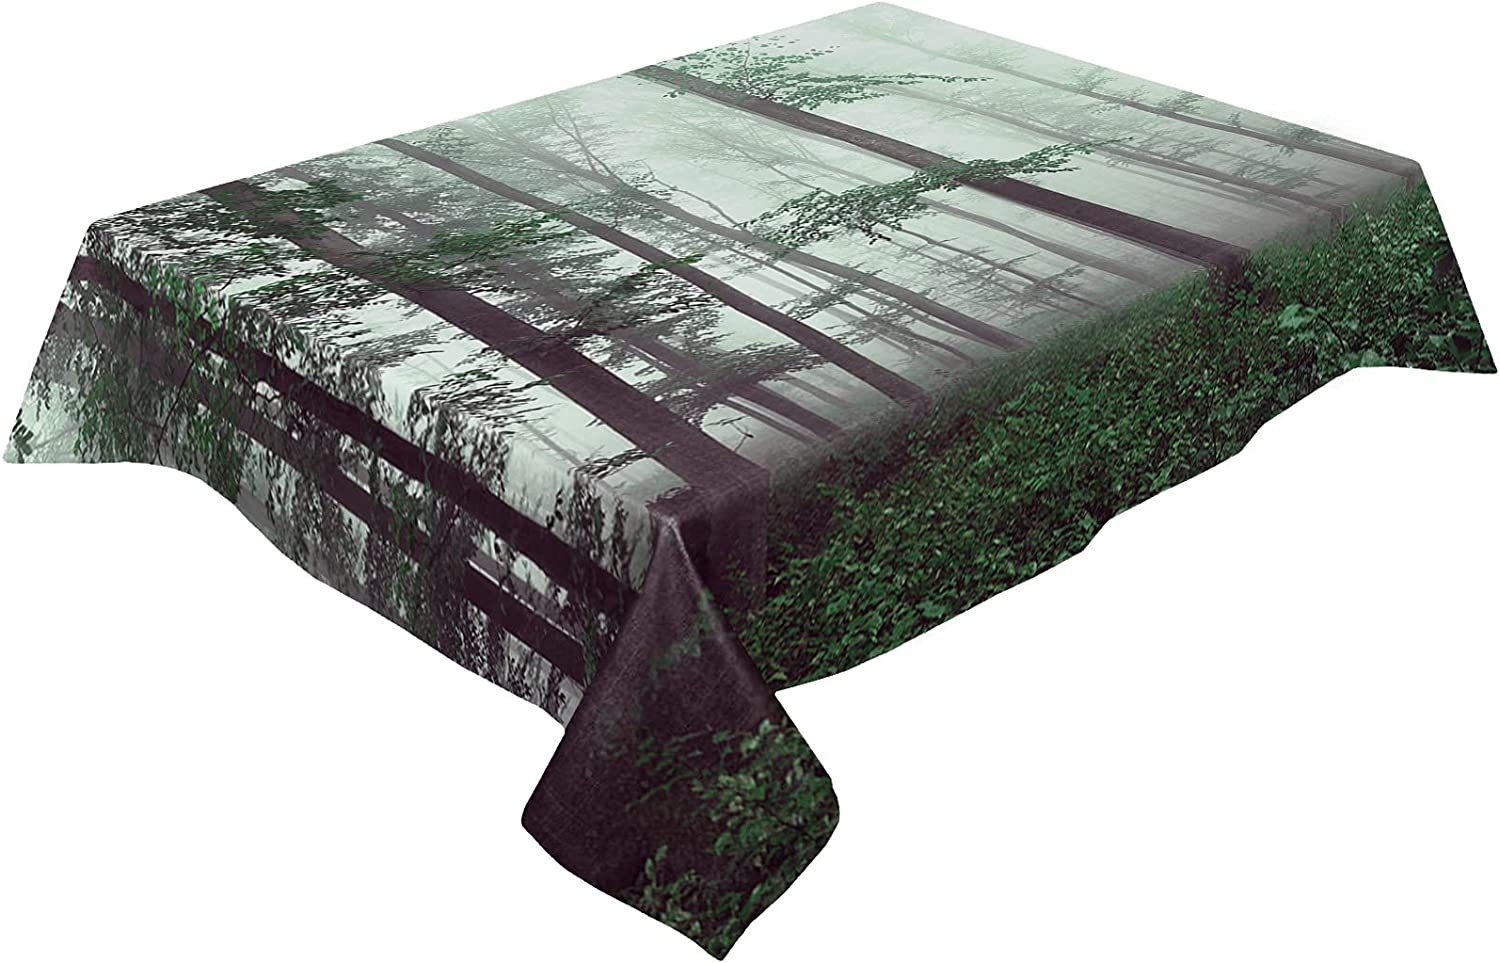 Table Cloth Cotton Linen Wrinkle Free specialty Outlet SALE shop Forest Season Myst Spring